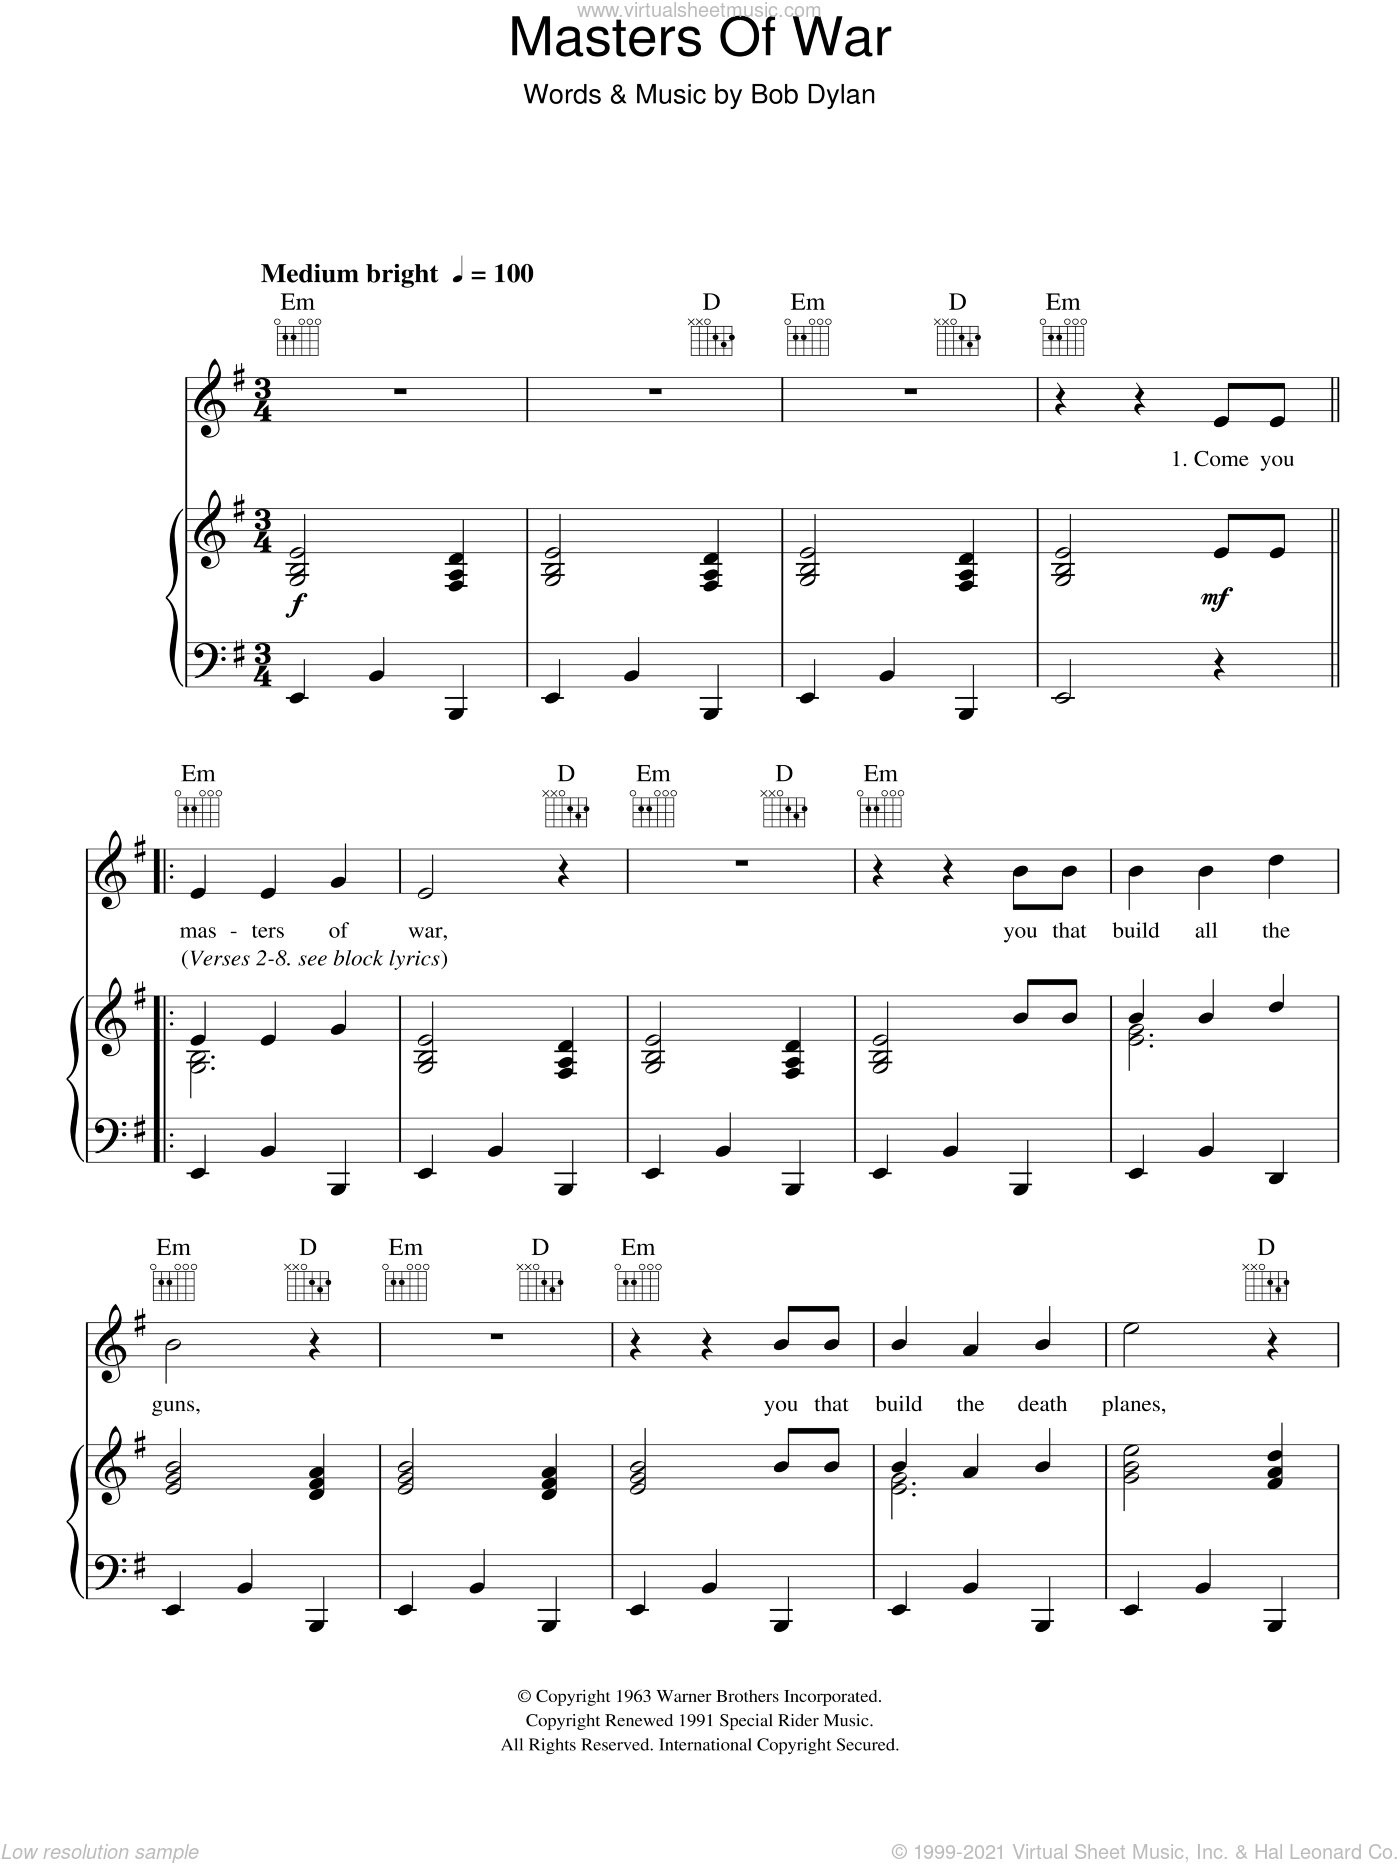 Masters Of War sheet music for voice, piano or guitar by Bob Dylan, intermediate voice, piano or guitar. Score Image Preview.